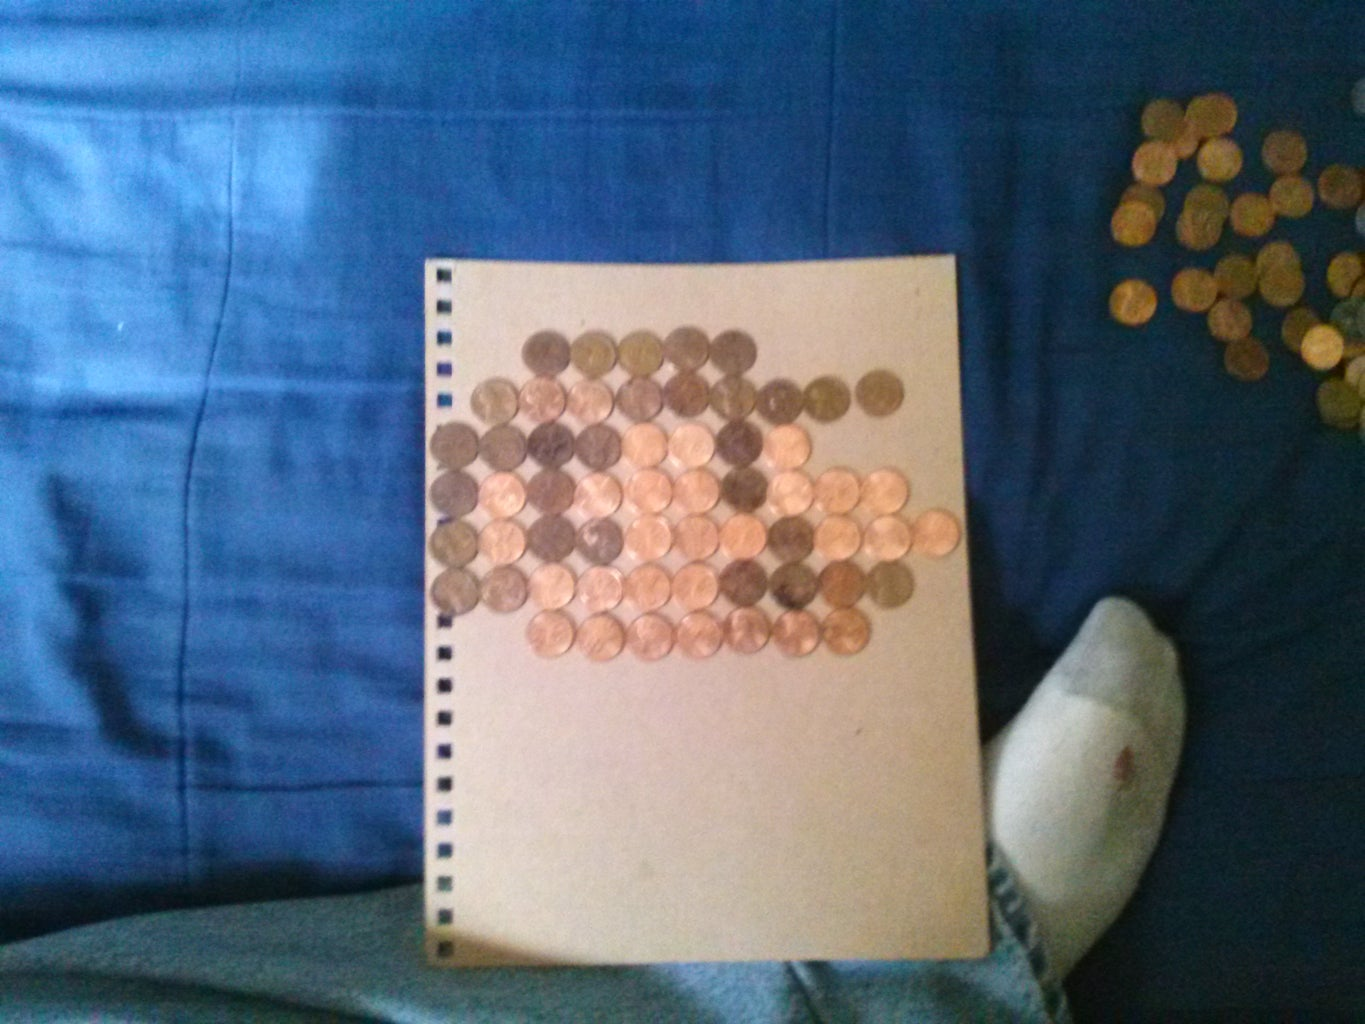 Next Is Using Your Seperated Coins and Start to Lay Them Out.